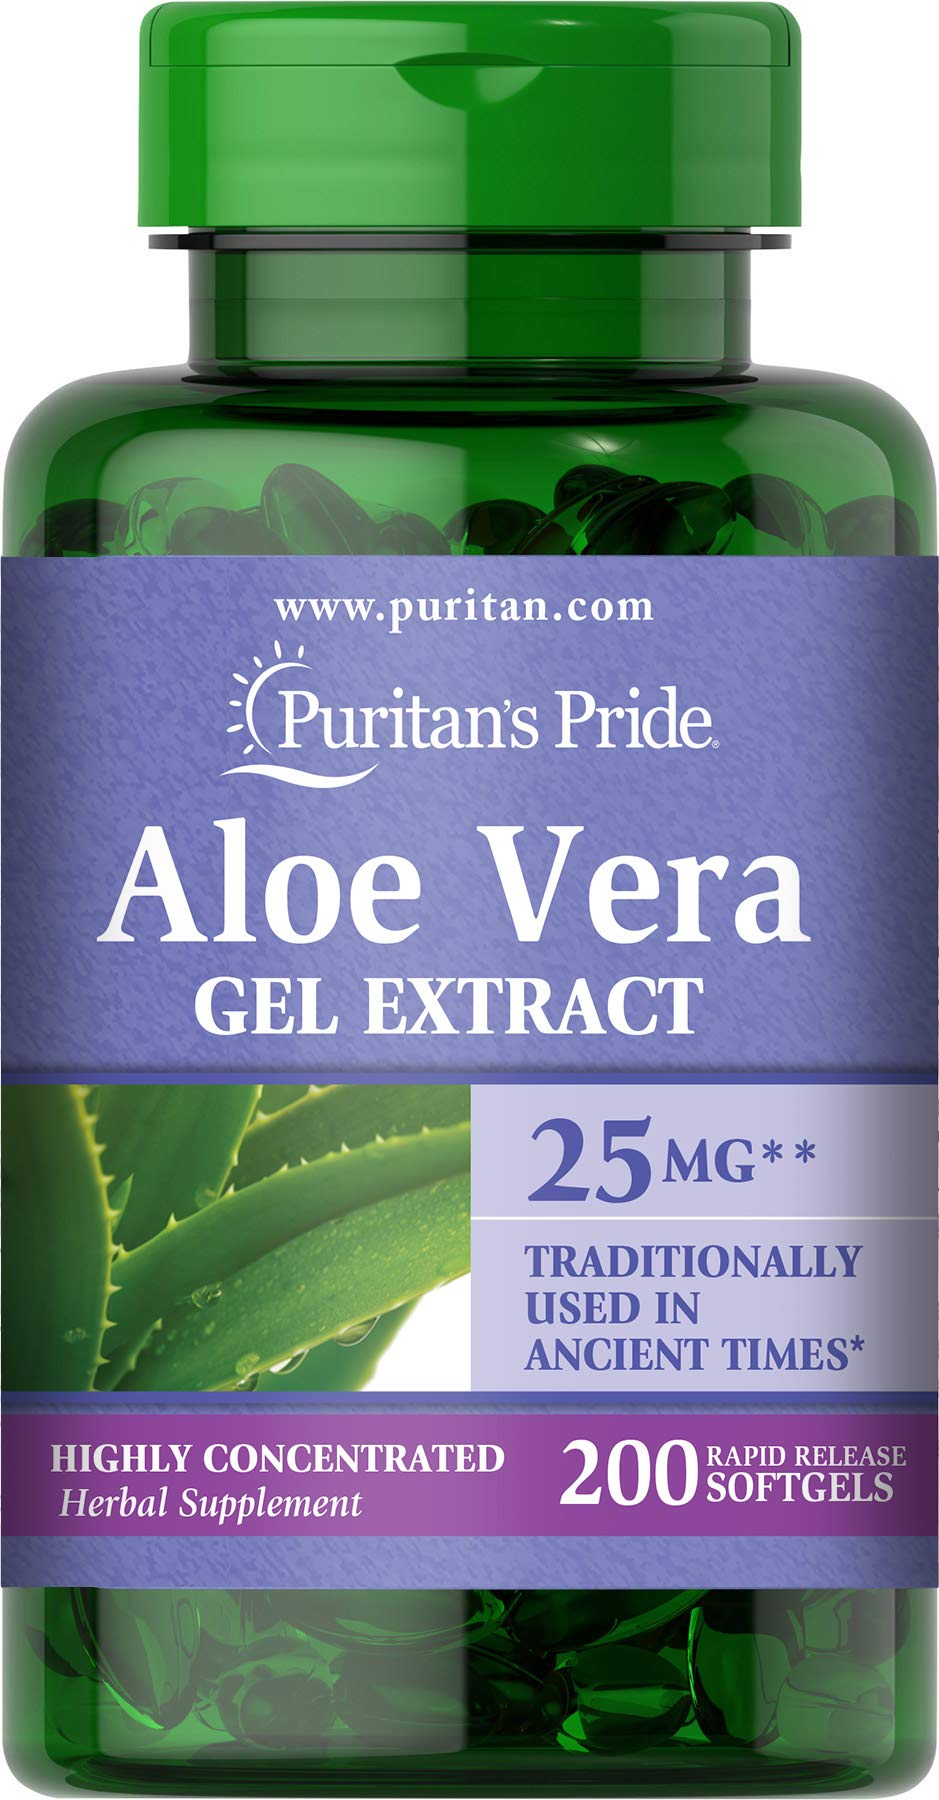 Puritans Pride Aloe Vera Extract 5000 Mg Softgels, 200 Count (Packaging may vary)